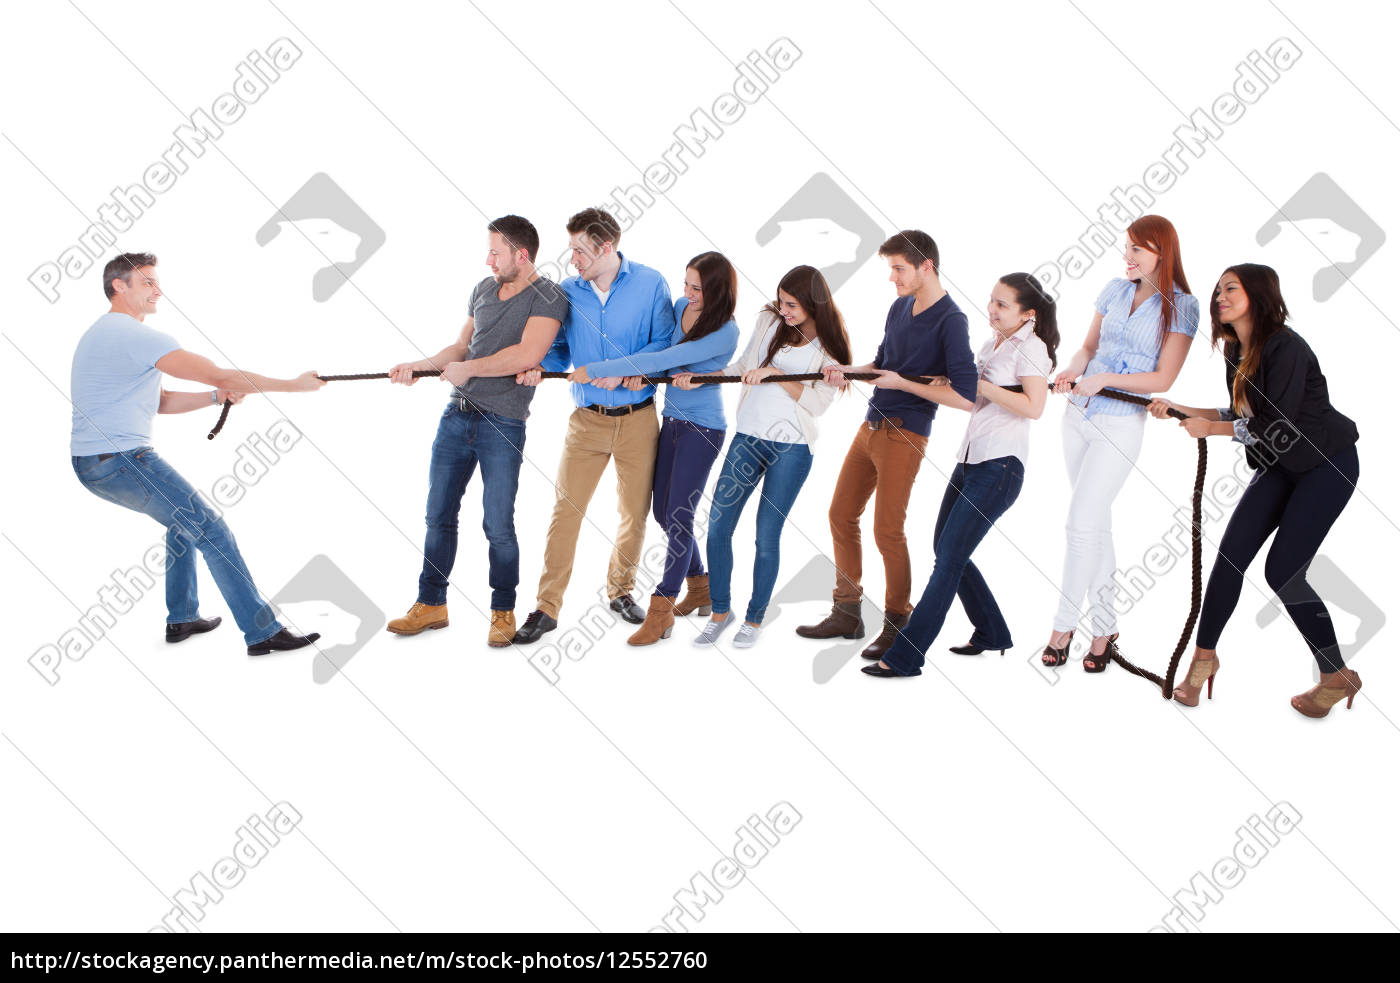 group, of, people, having, a, tug - 12552760